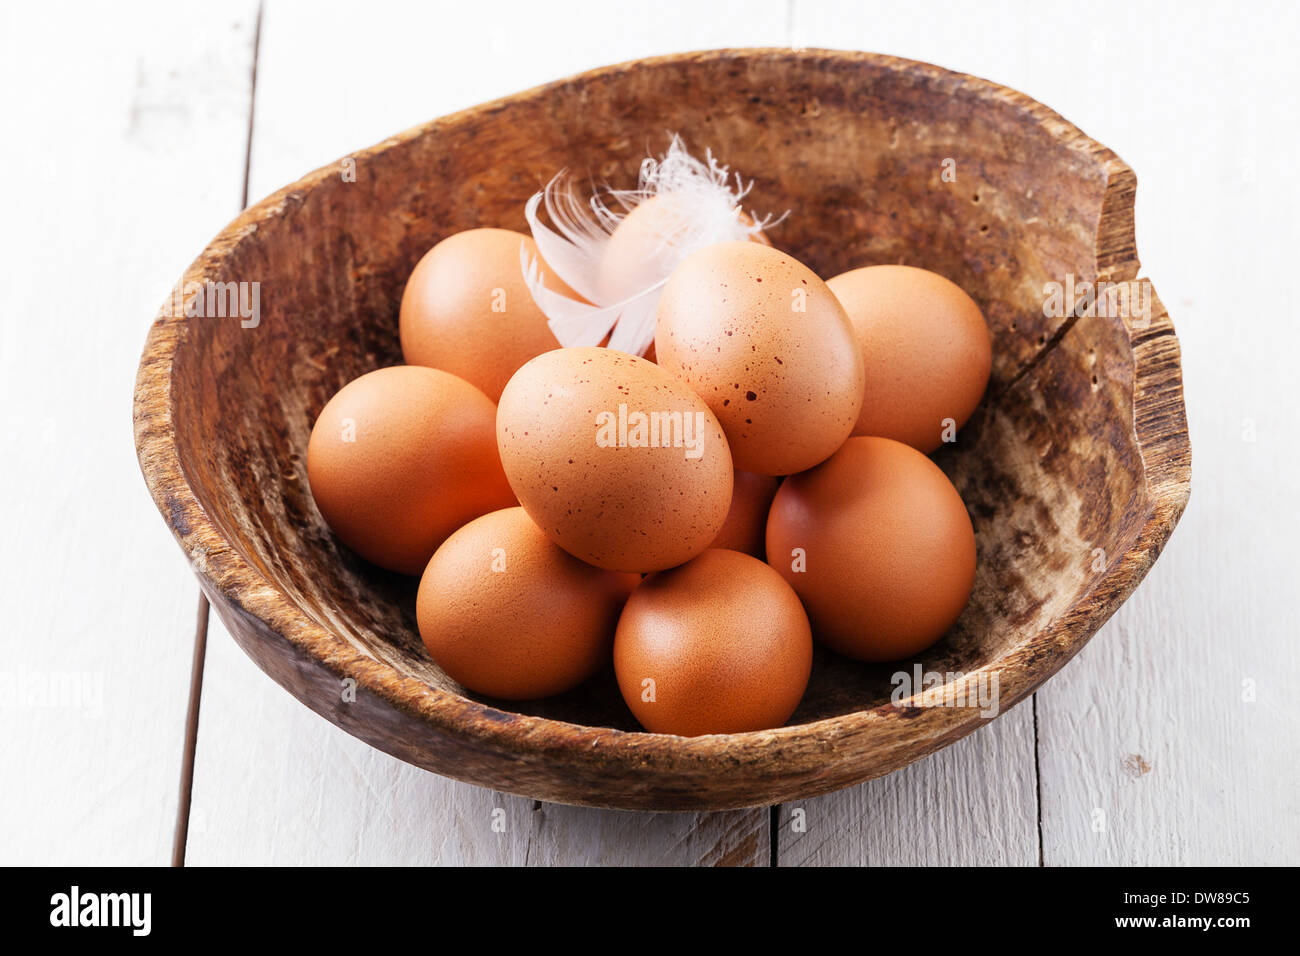 Eggs in bowl on wooden background Stock Photo